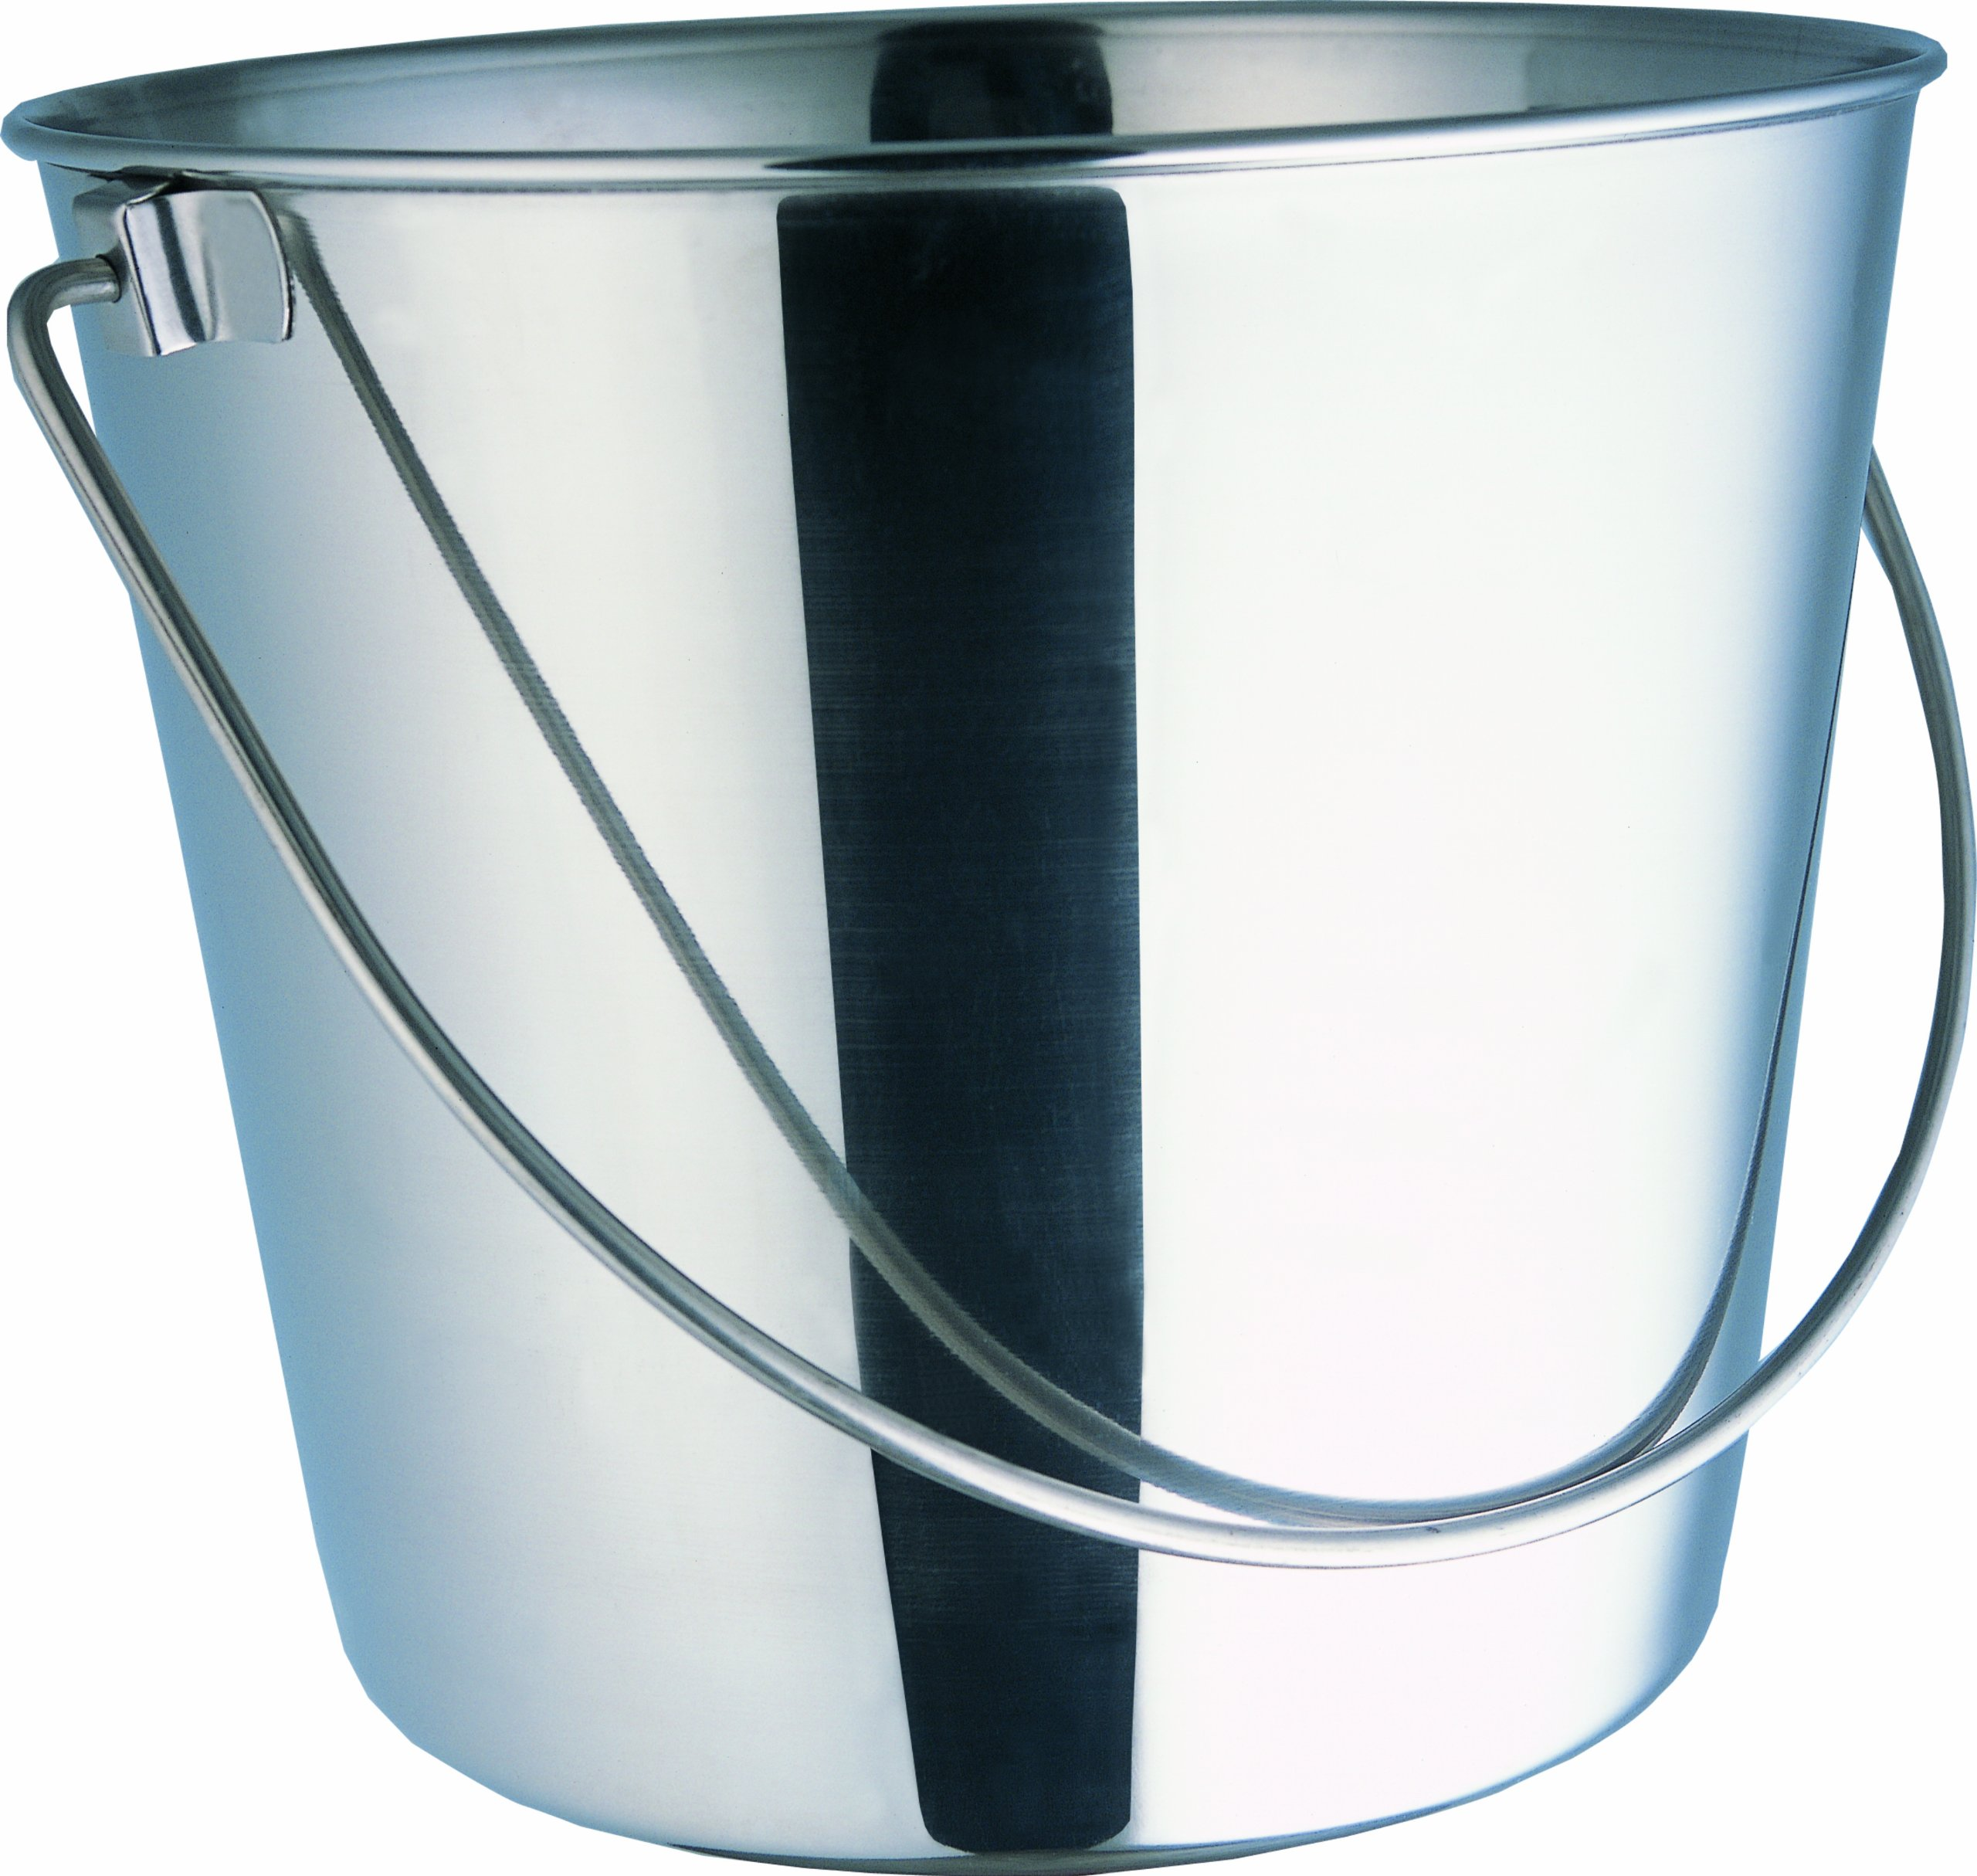 Indipets Heavy Duty Stainless Steel Pail, 16-Quart by Indipets